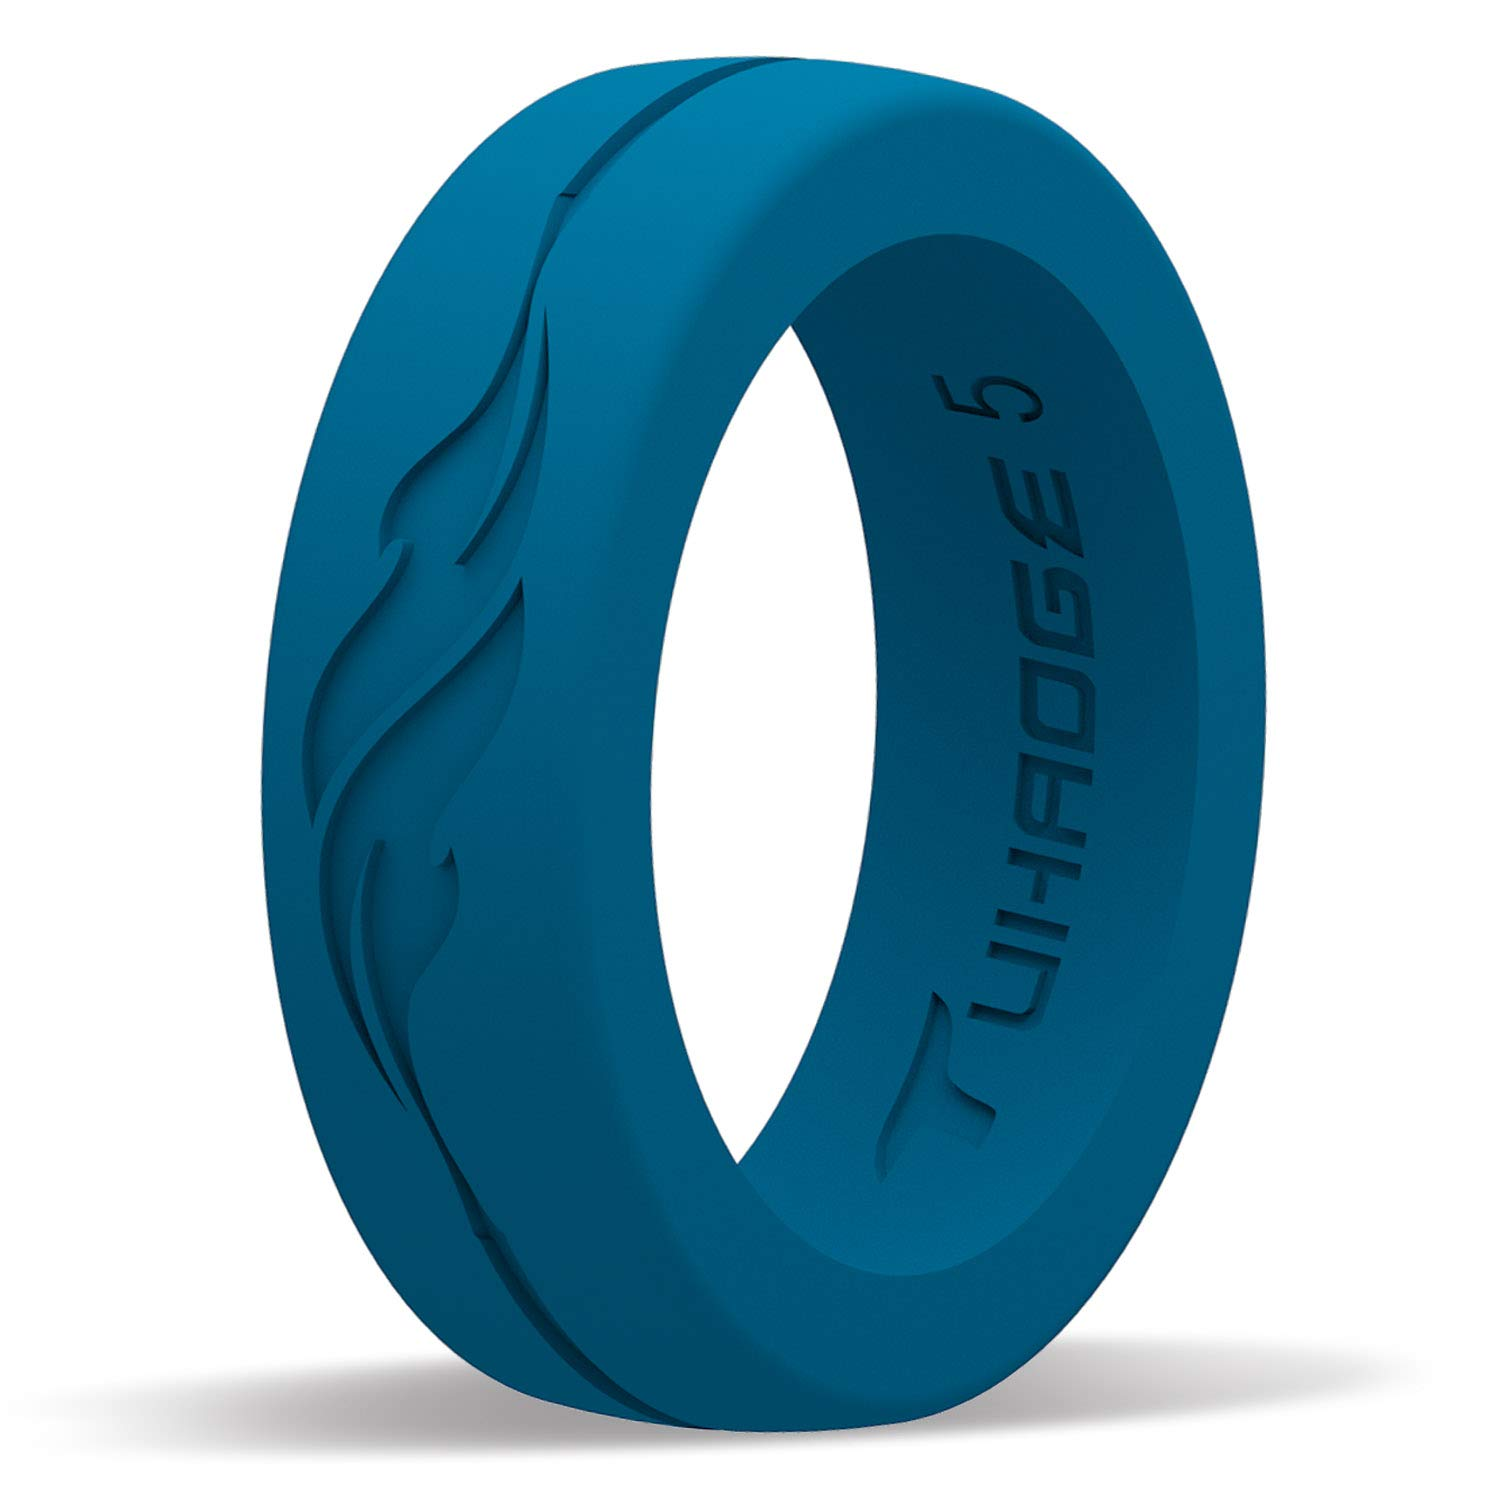 Tuhaoge Women's Silicone Wedding Ring Silicone Rubber Wedding Bands Representing The Pattern of Independent Freedom and Dreams, Promise Your Favorite Silicone Ring